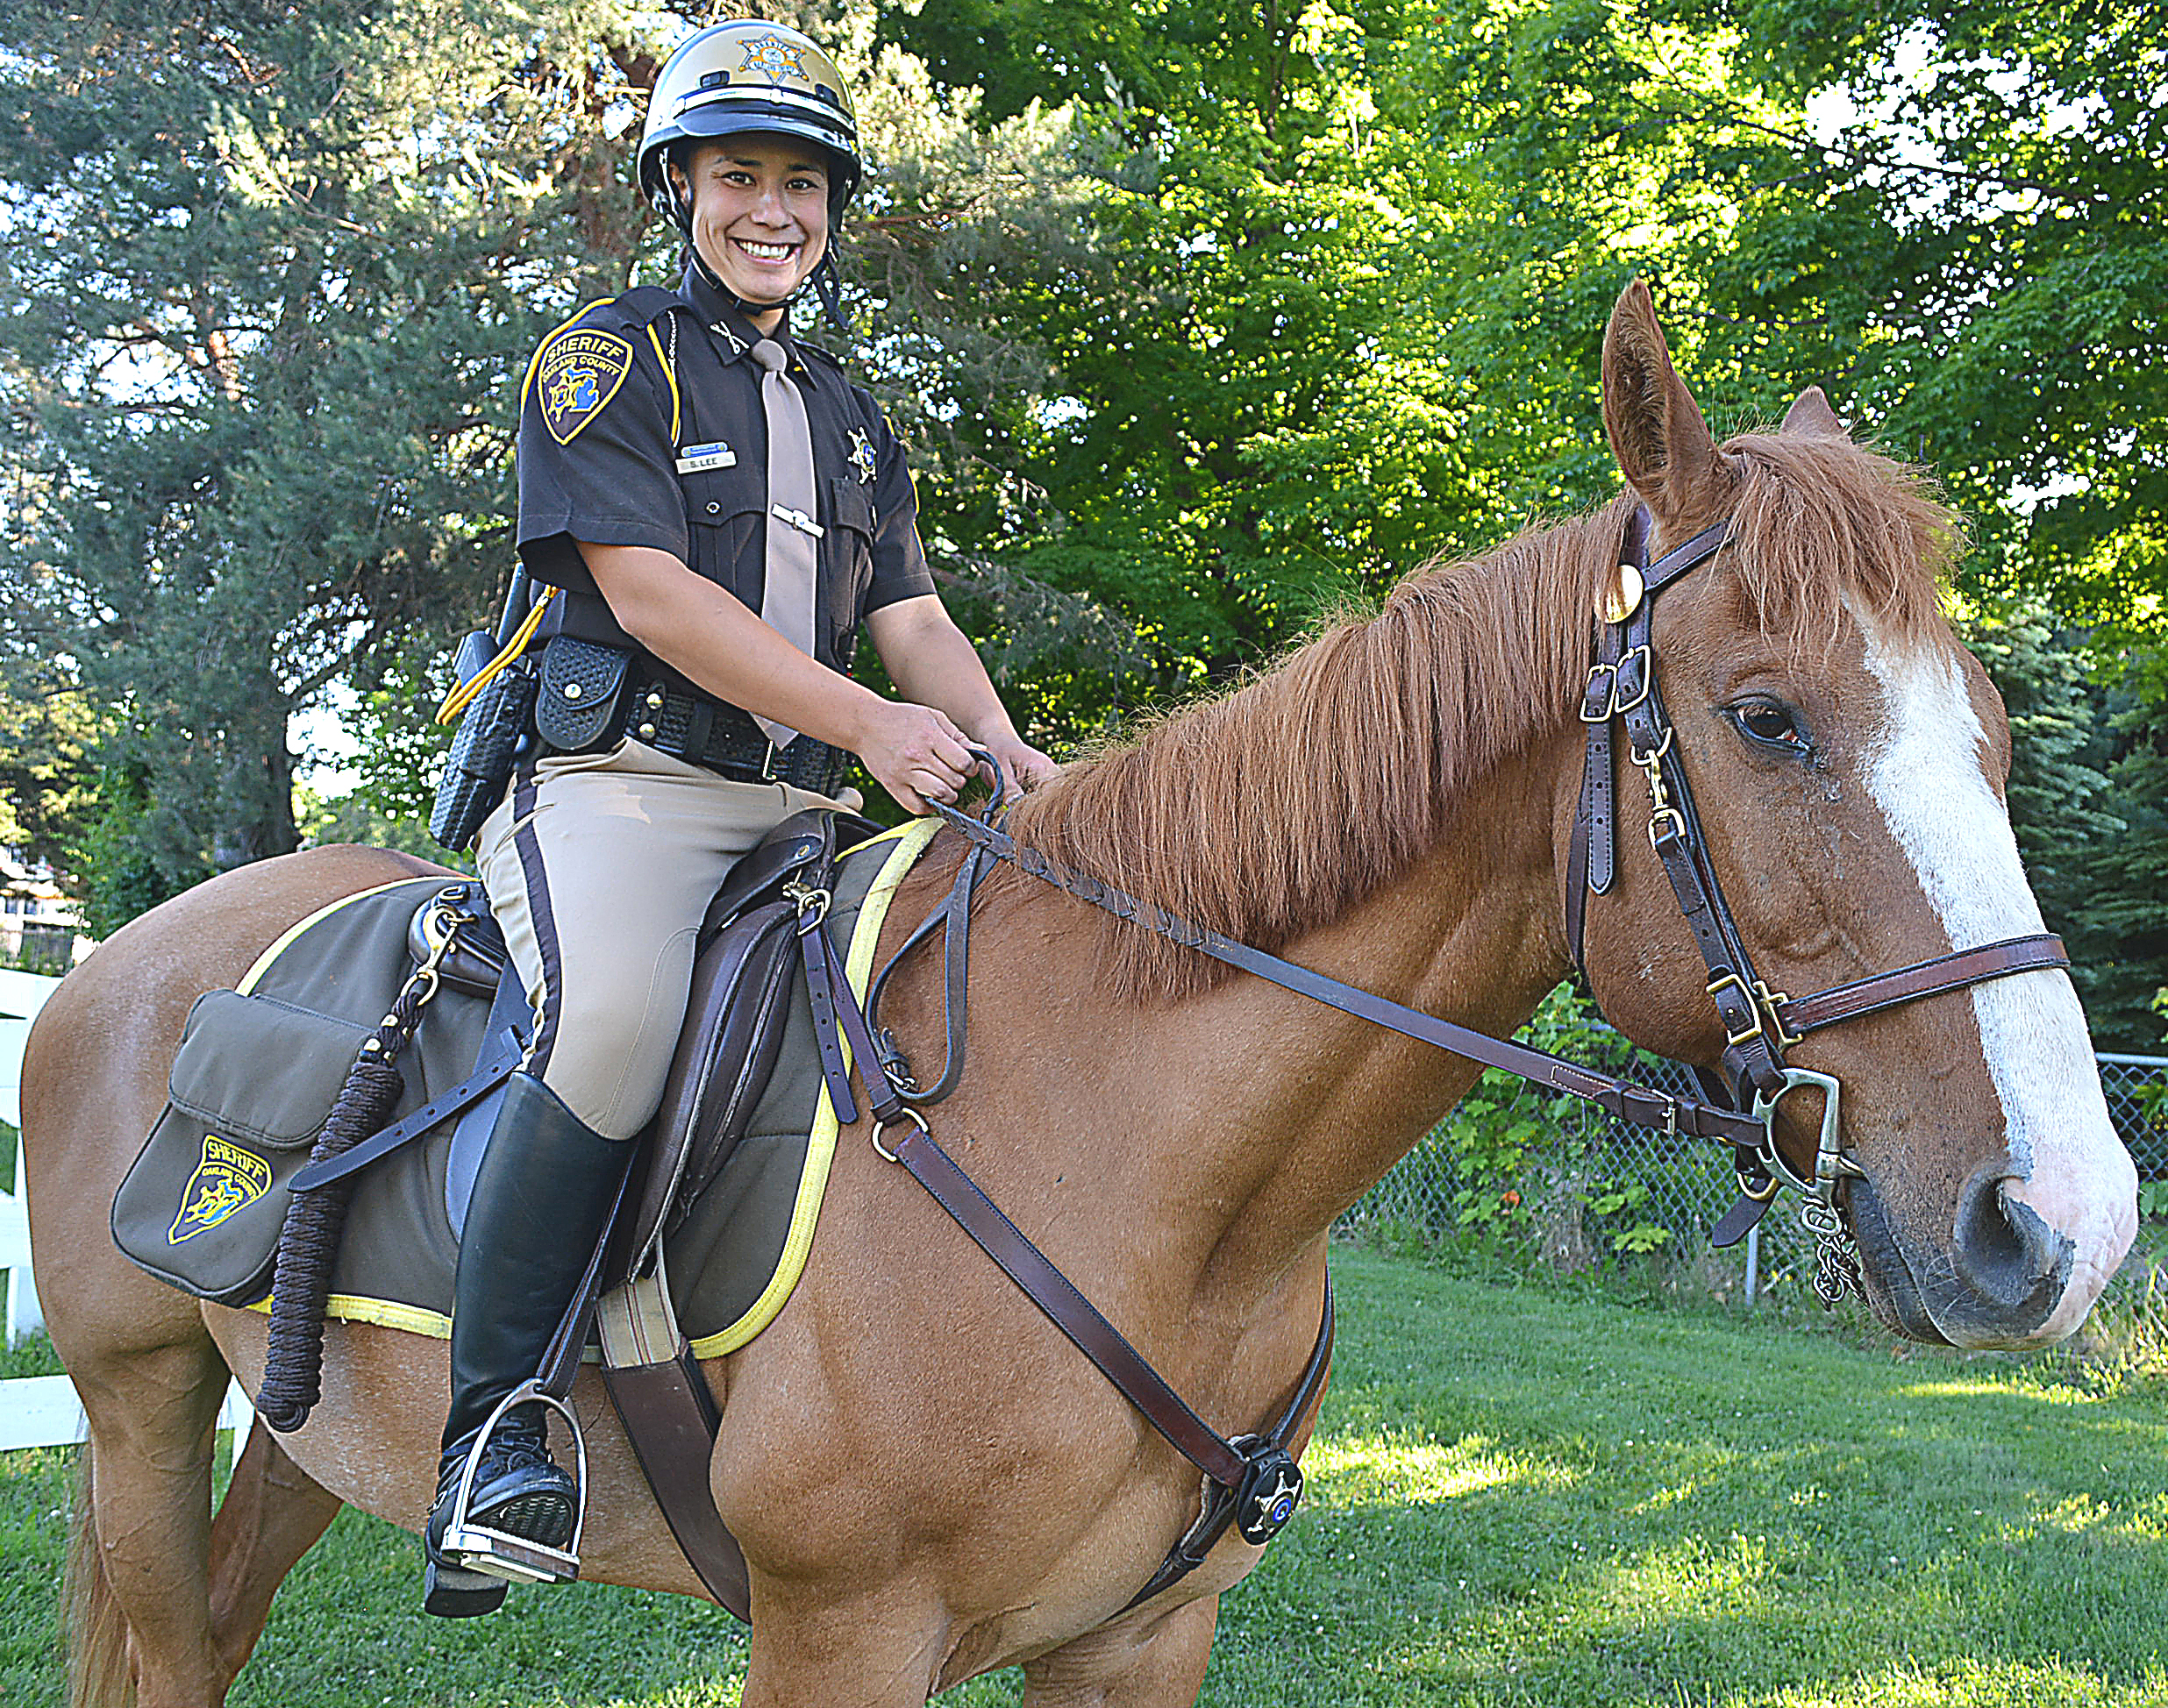 Look for Oakland County Sheriff's Mounted Deputy Stephanie Lee, of Lakeville, and her horse Hank Williams at county parks and special events this summer. Photo by CJC.